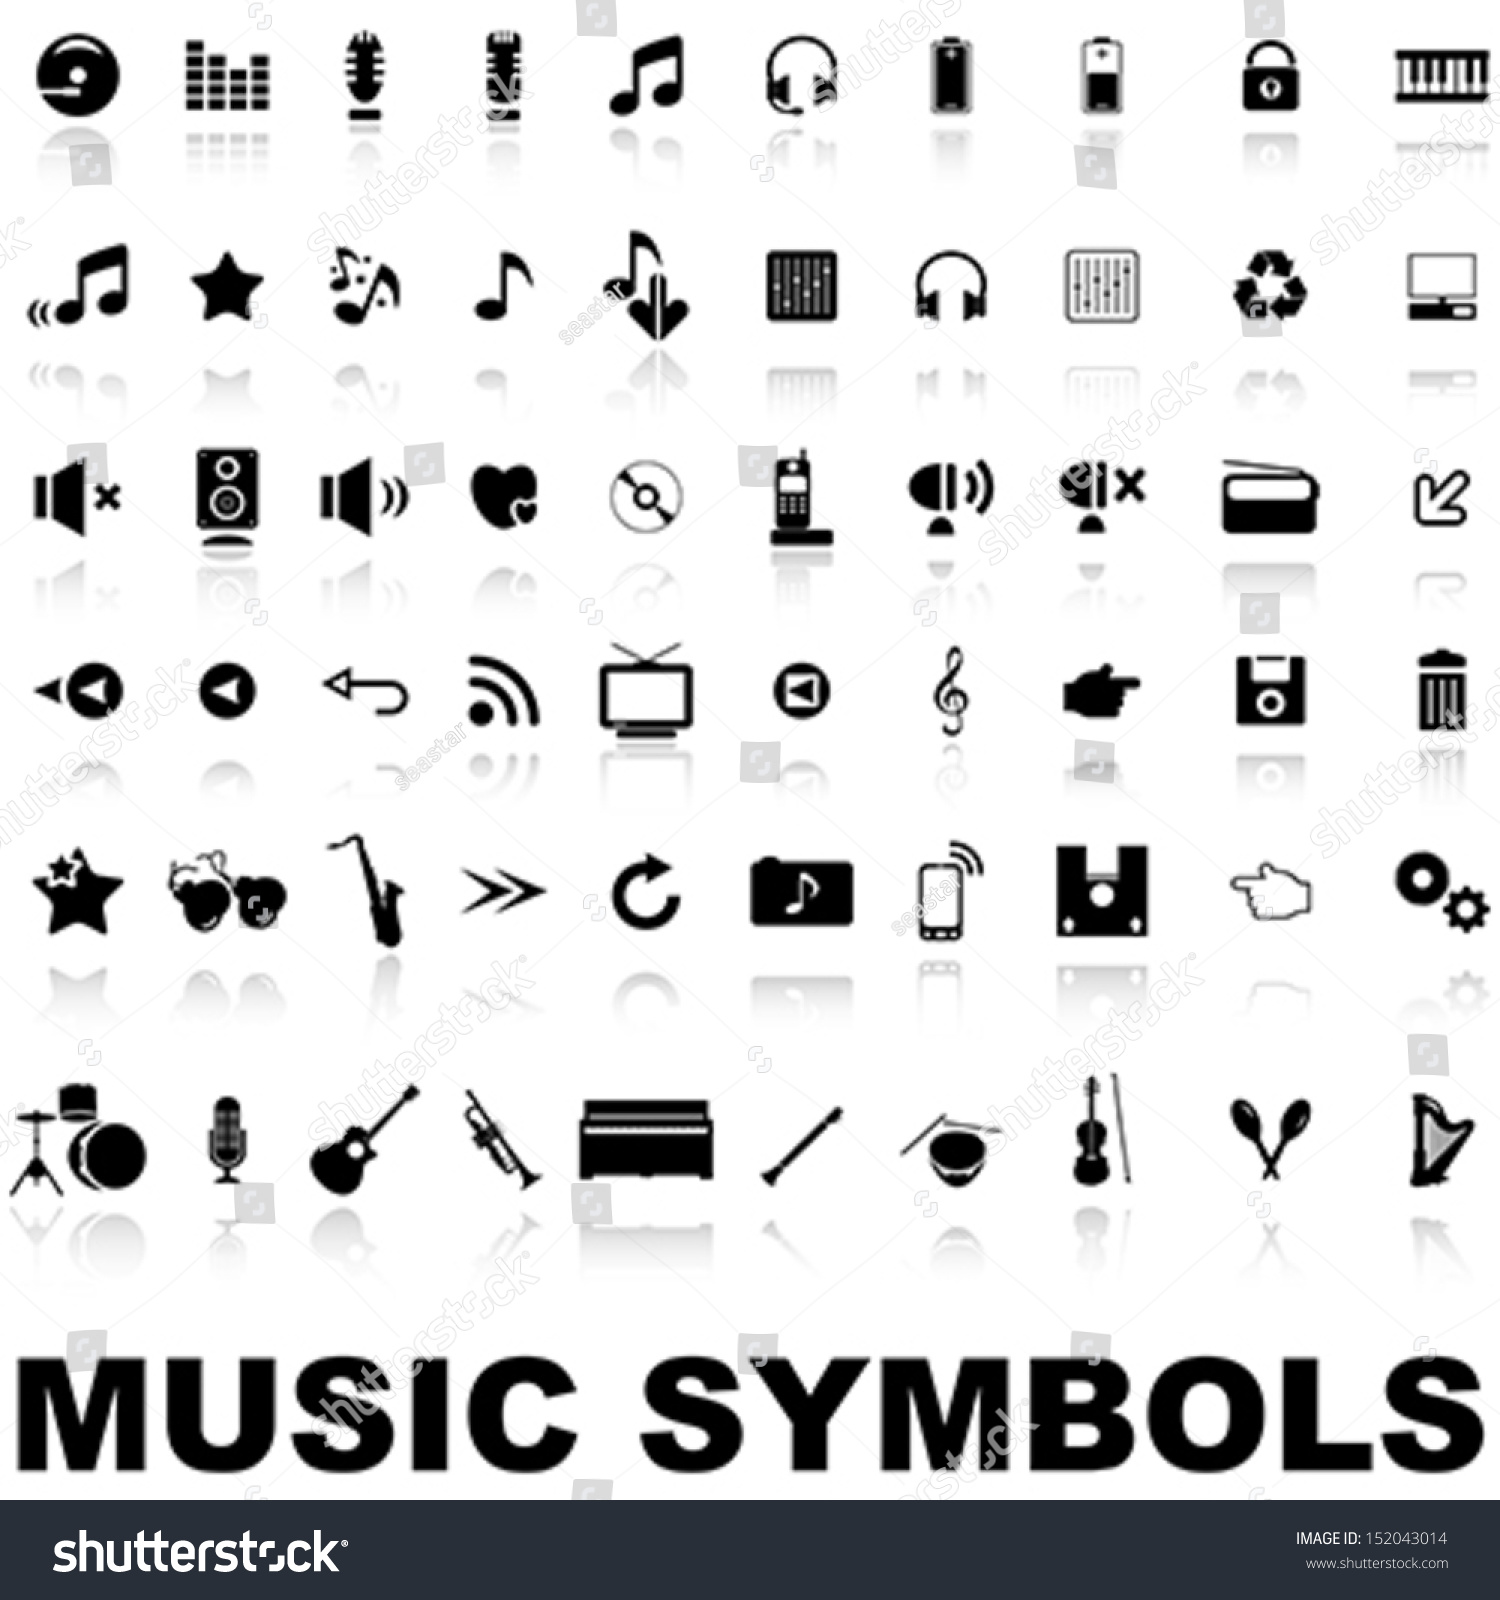 Music symbols stock vector 152043014 shutterstock biocorpaavc Images